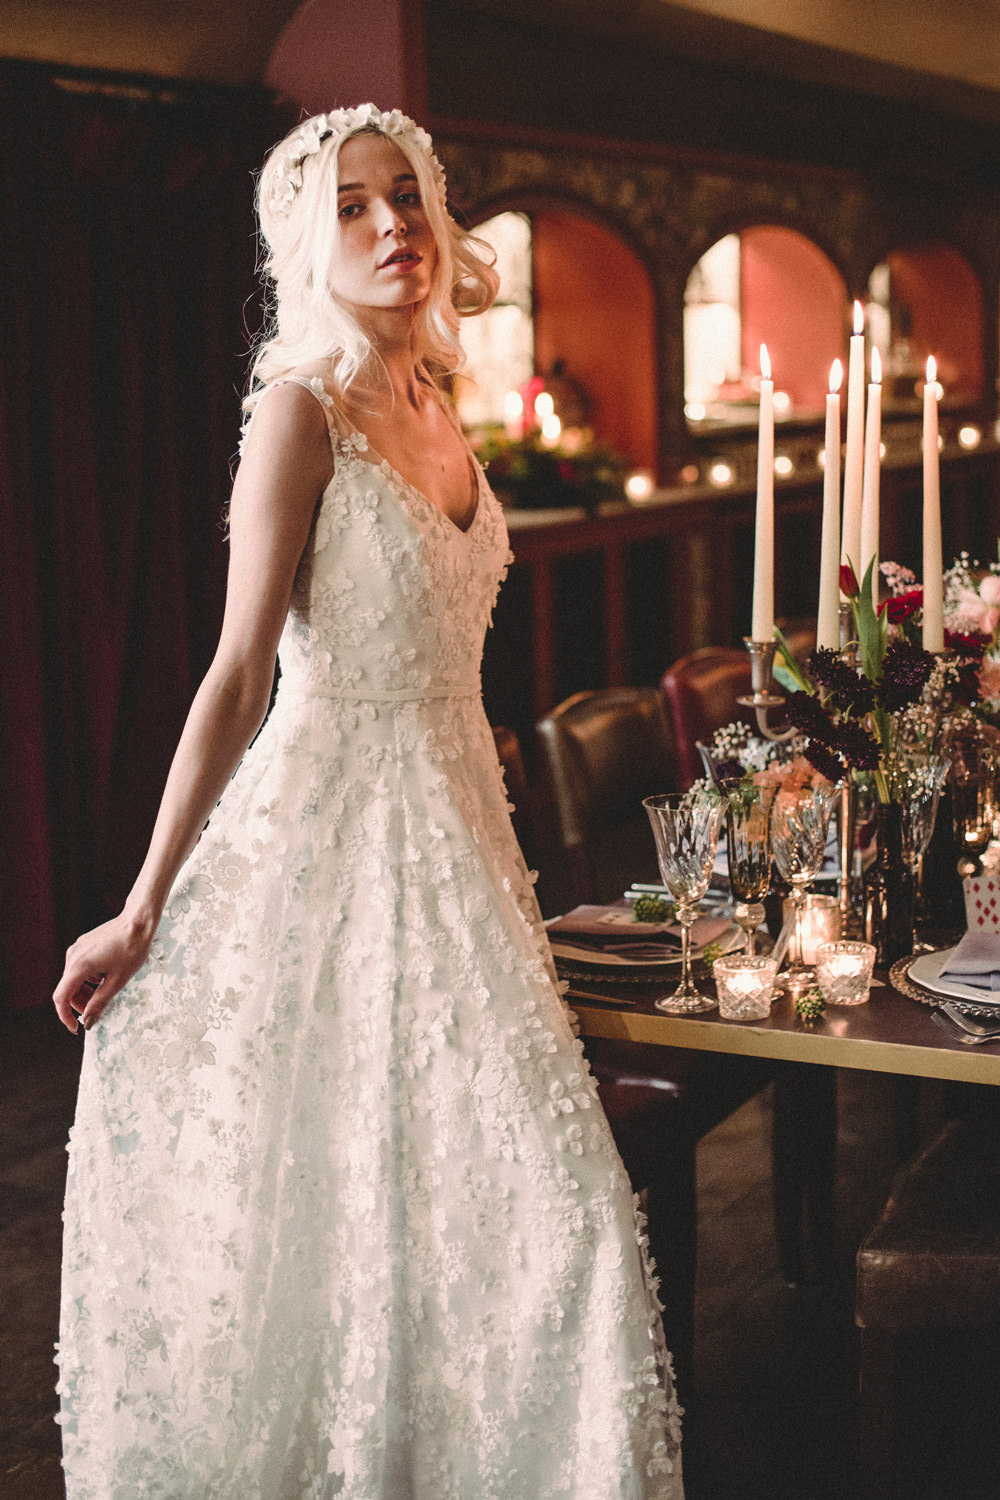 Bride Bridal Dress Gown Naomi Neoh Floral Lace Train Whimsical Elegant Wedding Ideas Mandorla London